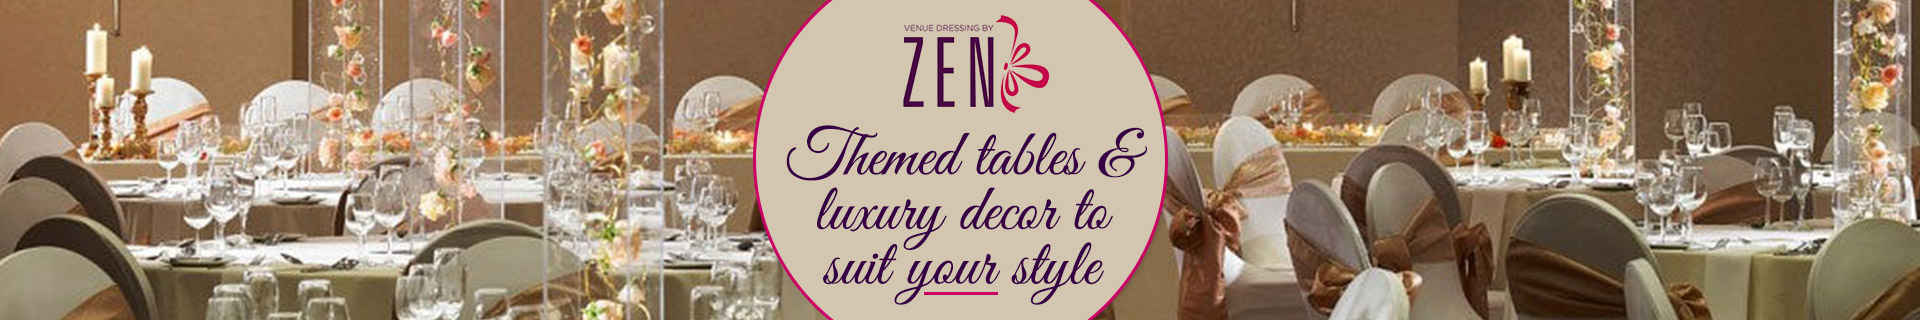 Themed tables & luxury decor to suit your personal style!